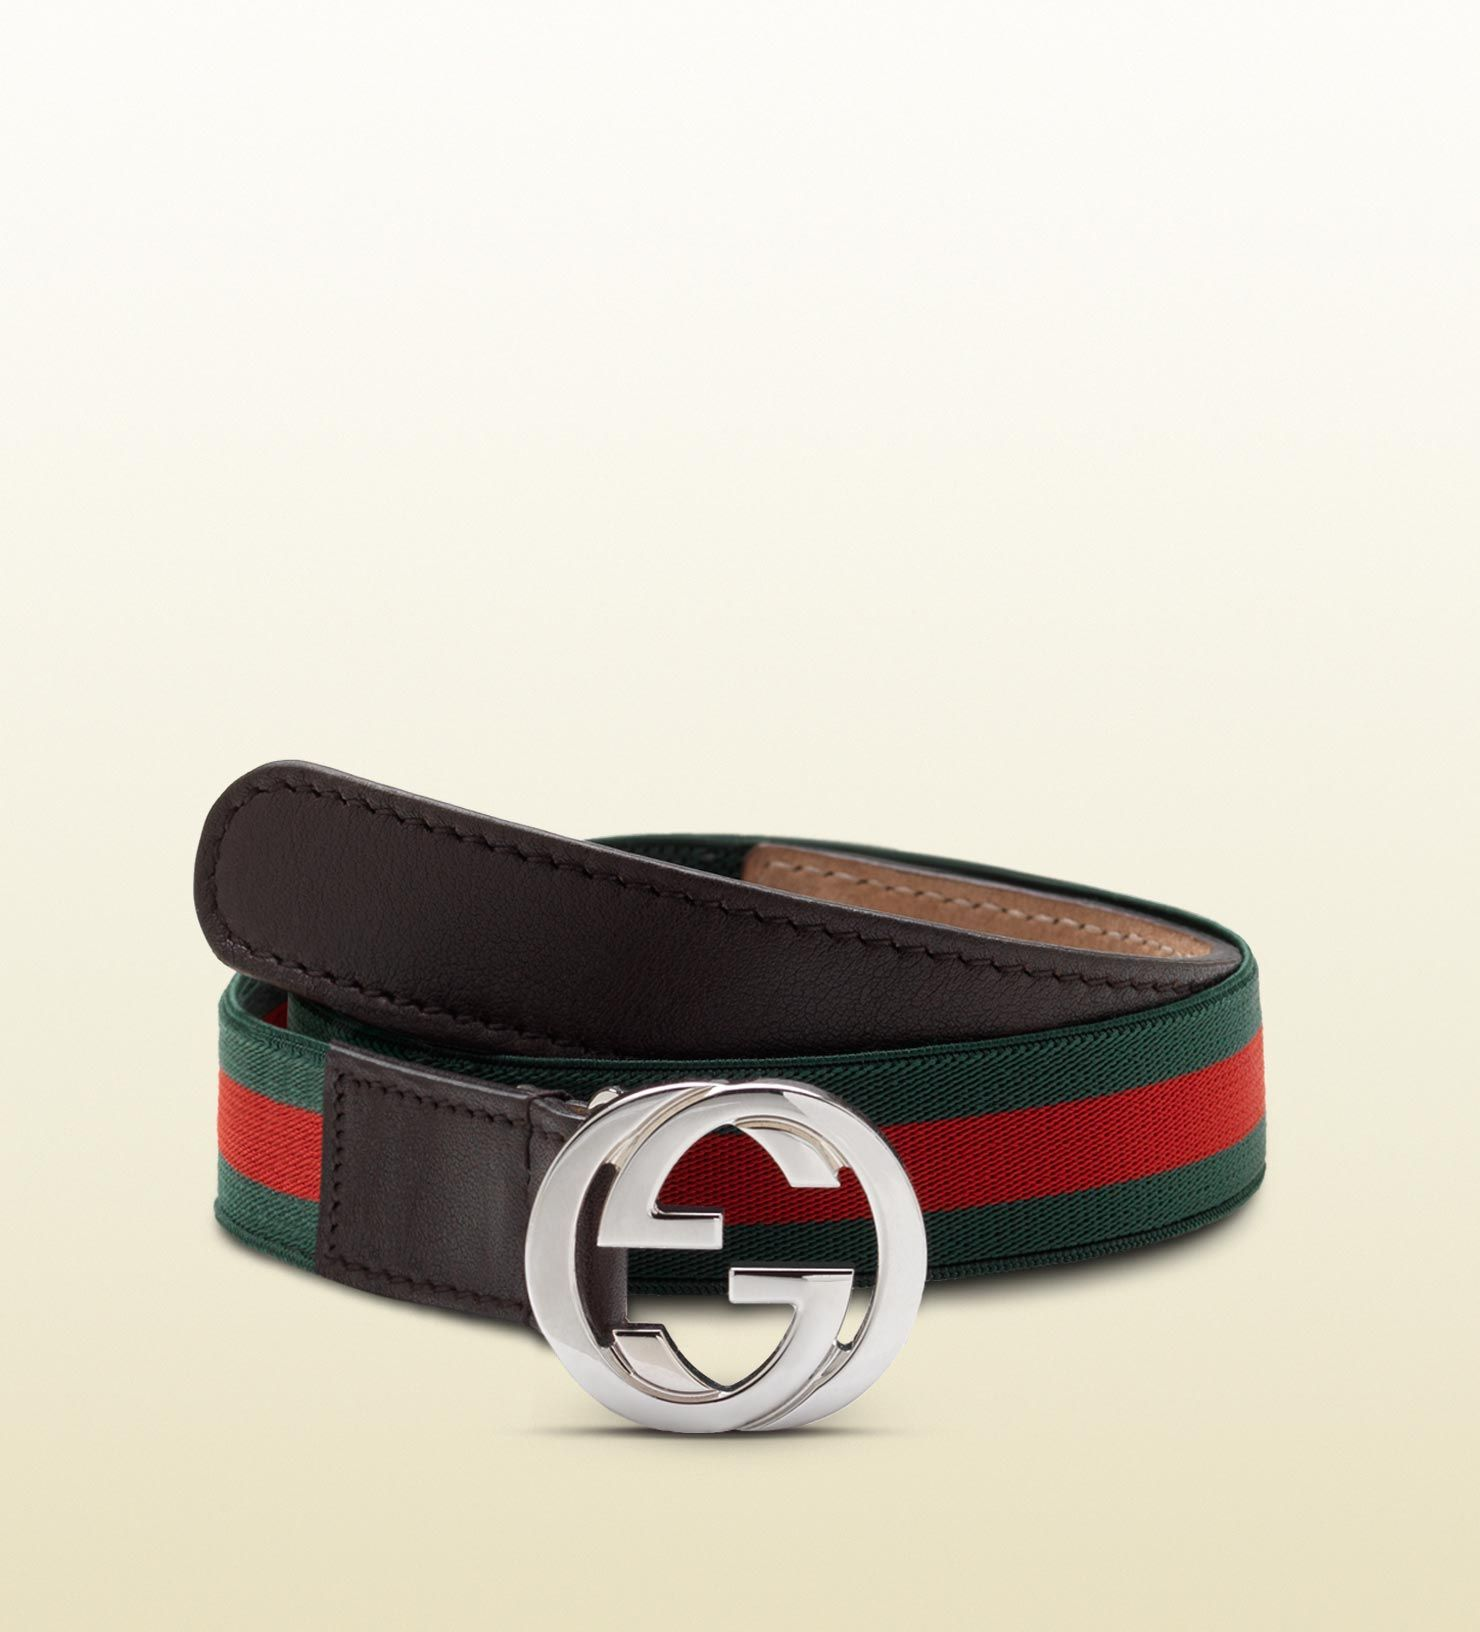 accba2ddc27 Web belt with Gucci buckle in 2019 | ☆ Accessories | Gucci web belt, Gucci  bags outlet, Gucci men